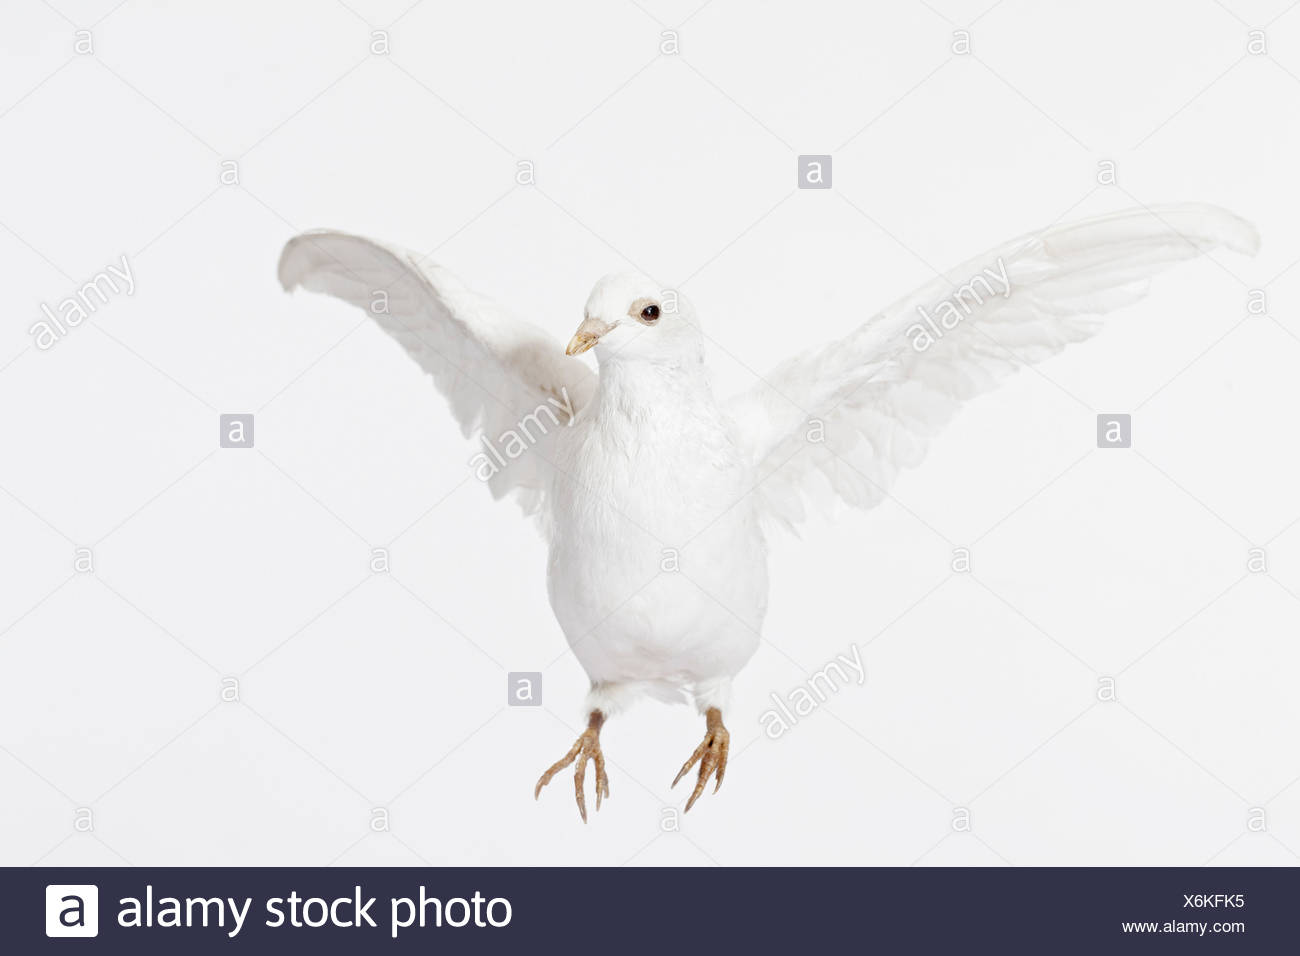 Close up of white dove flying Photo Stock